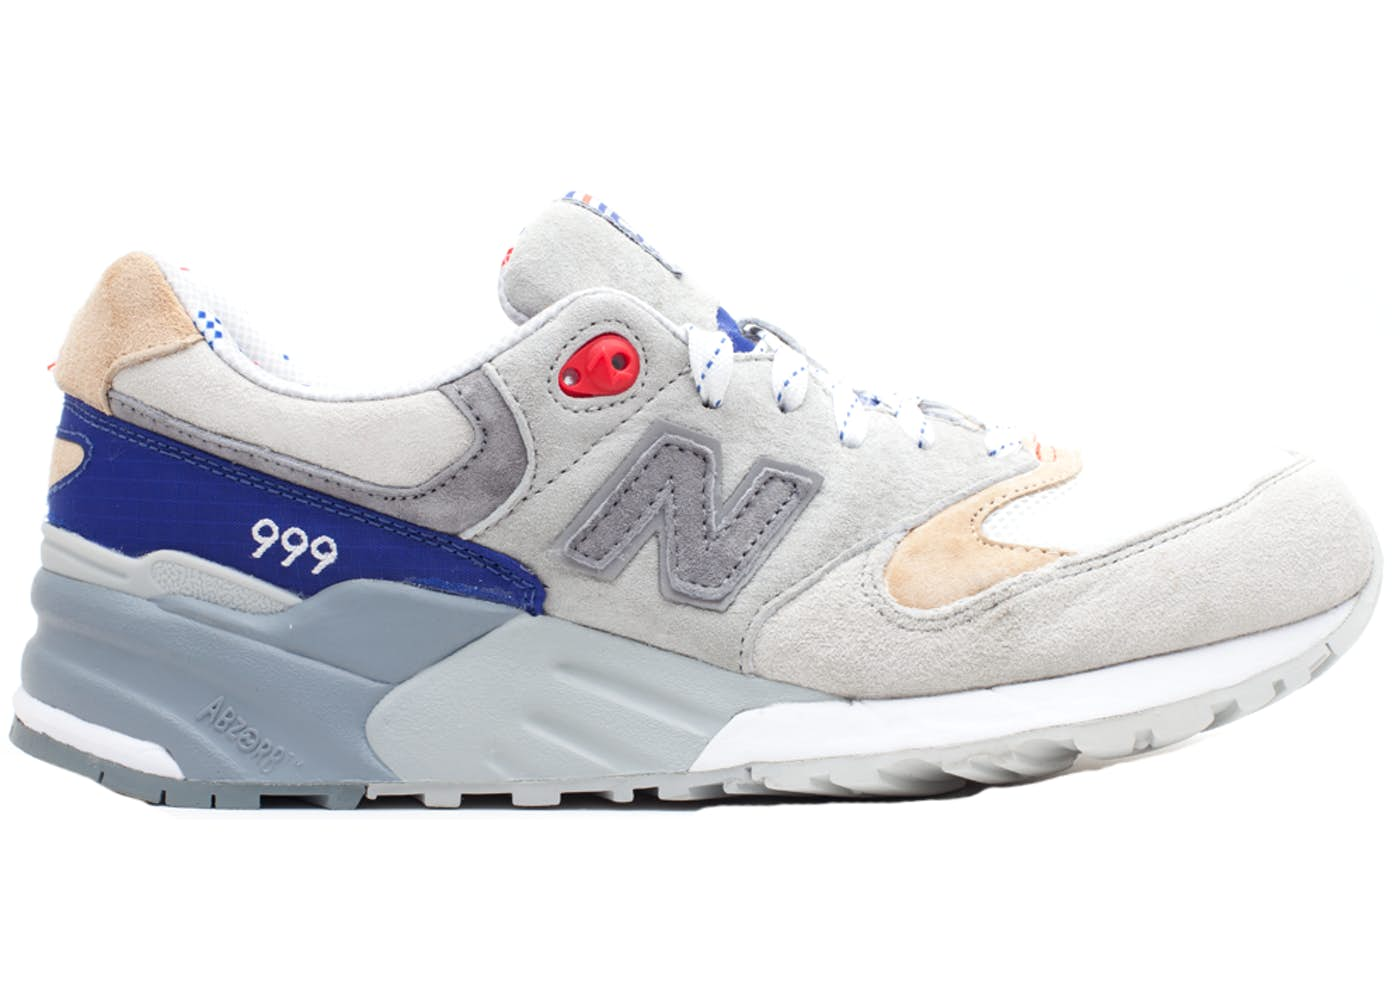 Balance 999 concepts the kennedy new balance 999 concepts the kennedy biocorpaavc Choice Image